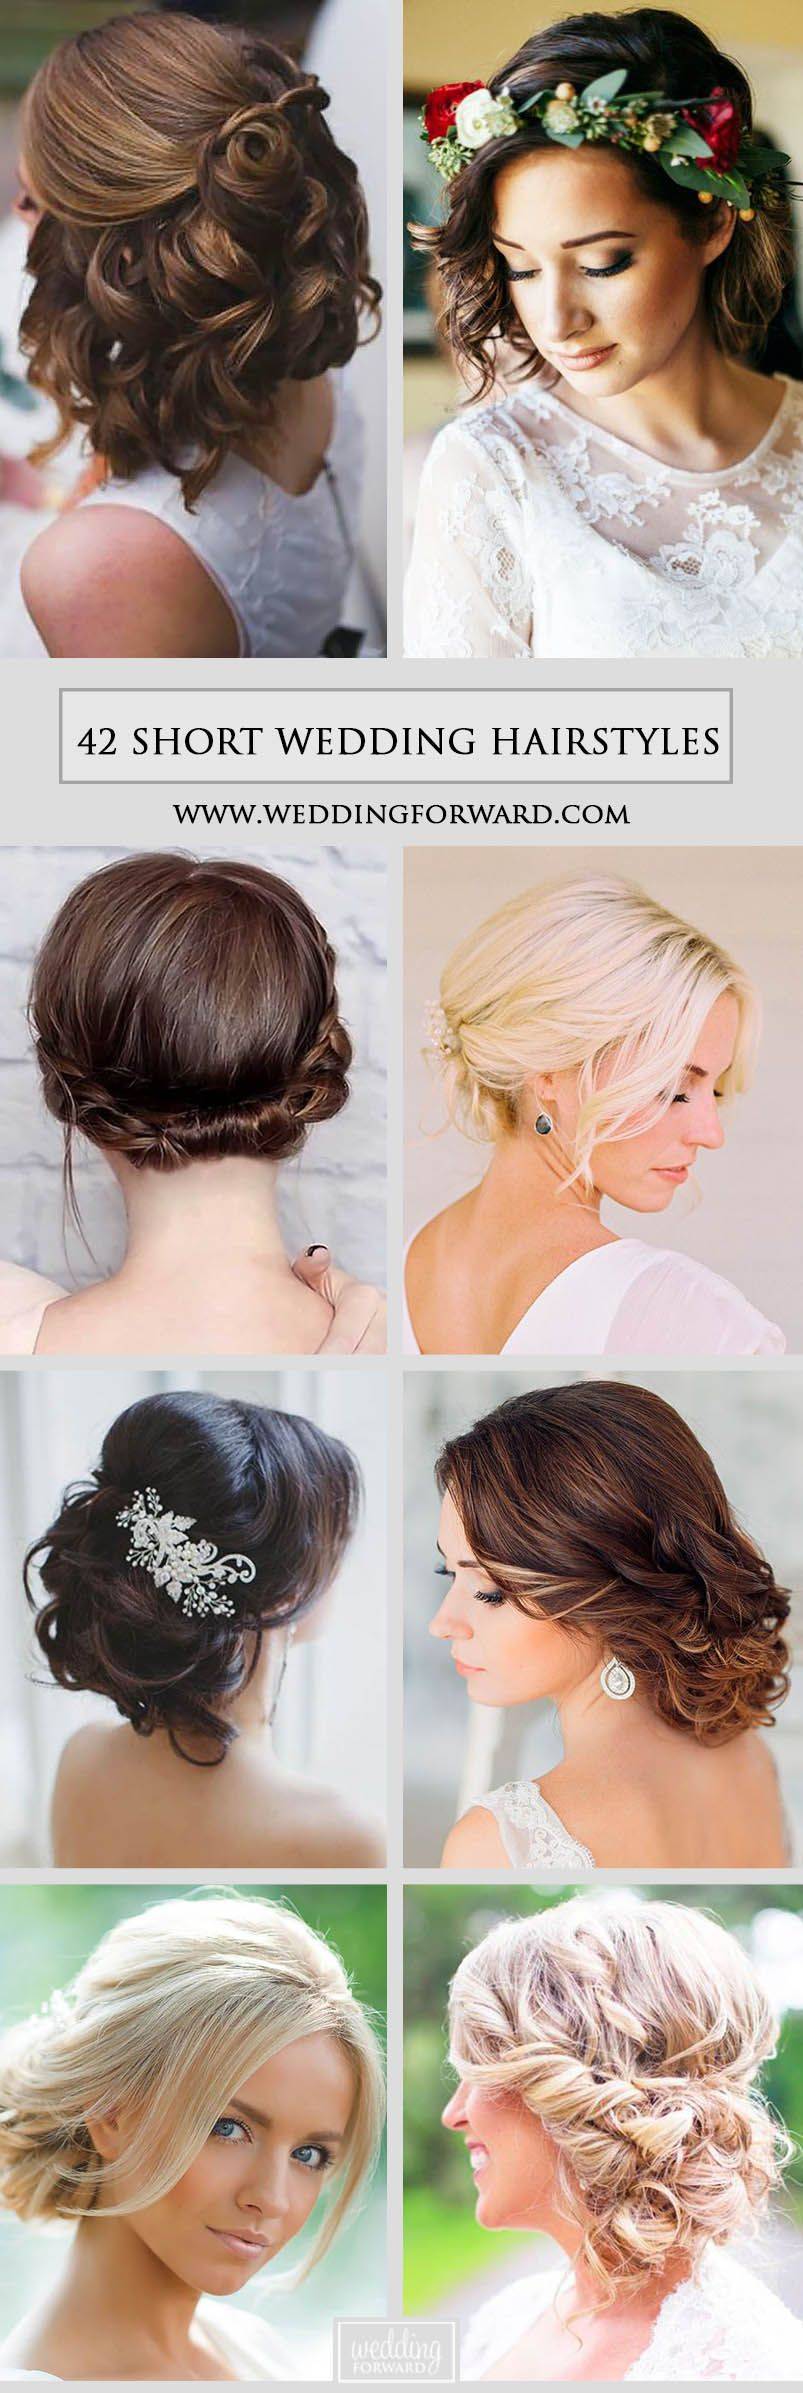 short wedding hairstyle ideas so good youud want to cut hair i